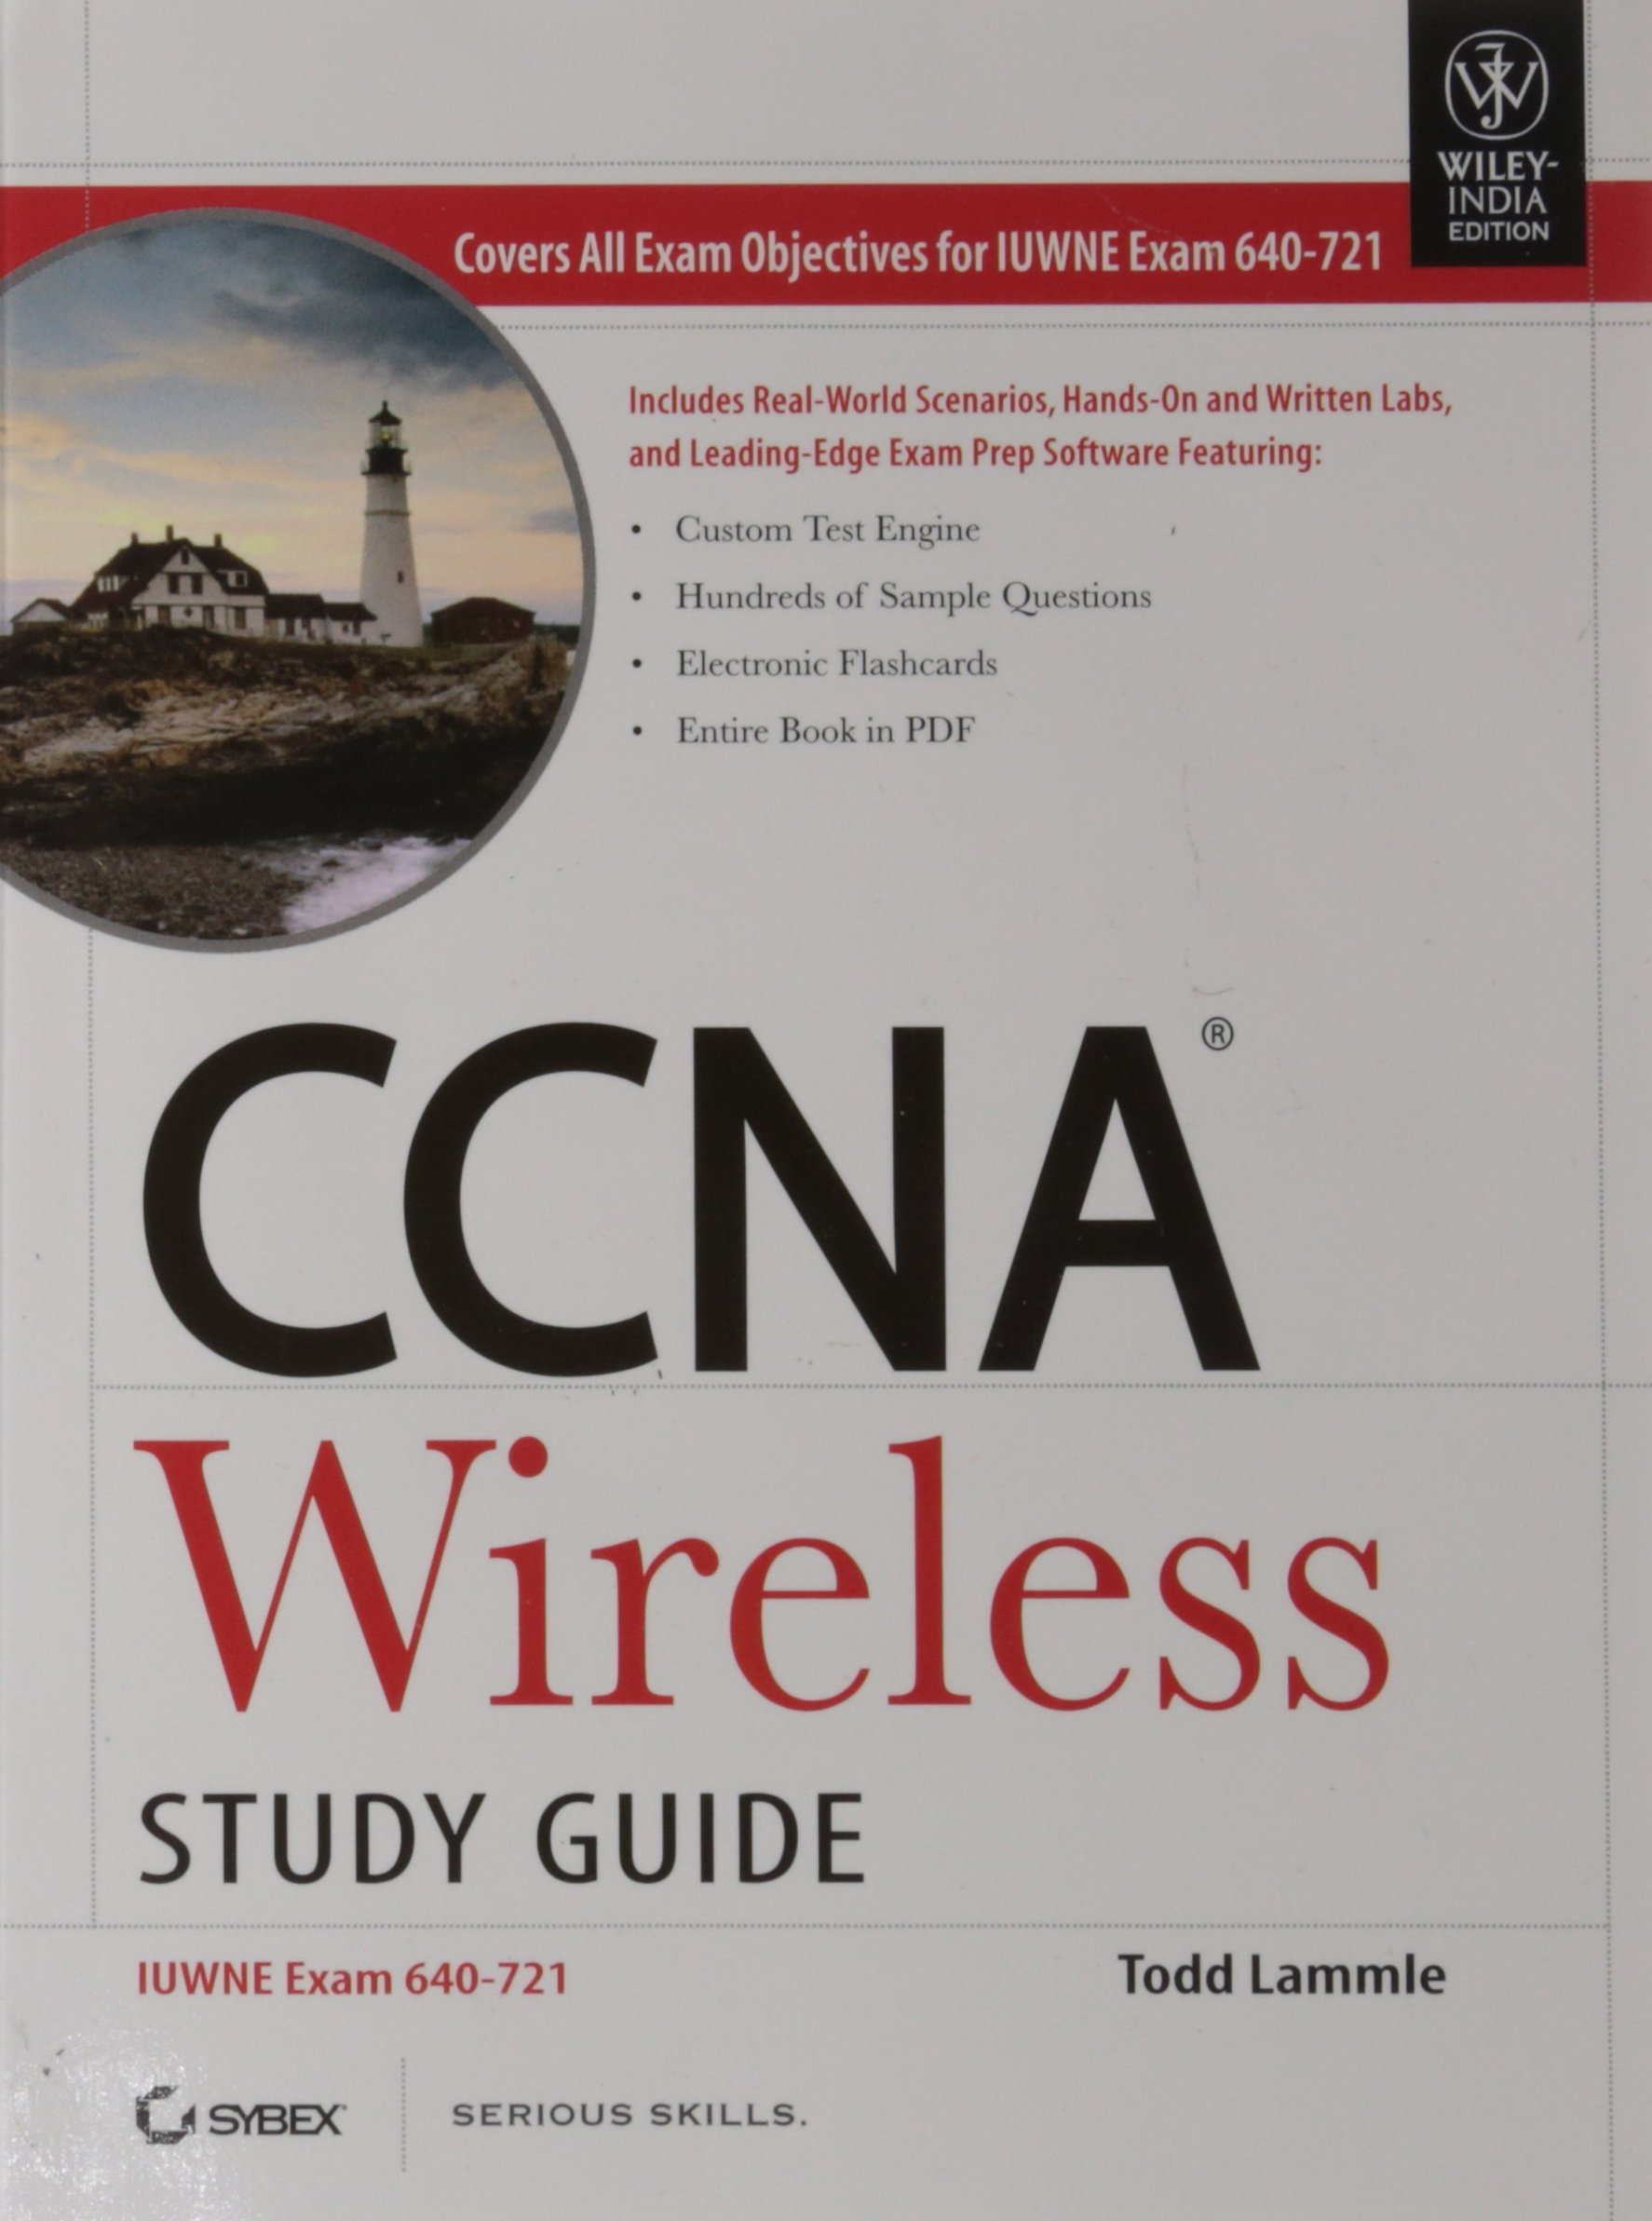 CCNA Wireless Study Guide: IUWNE Exam 640-721: Todd Lammle: 9788126527953:  Amazon.com: Books